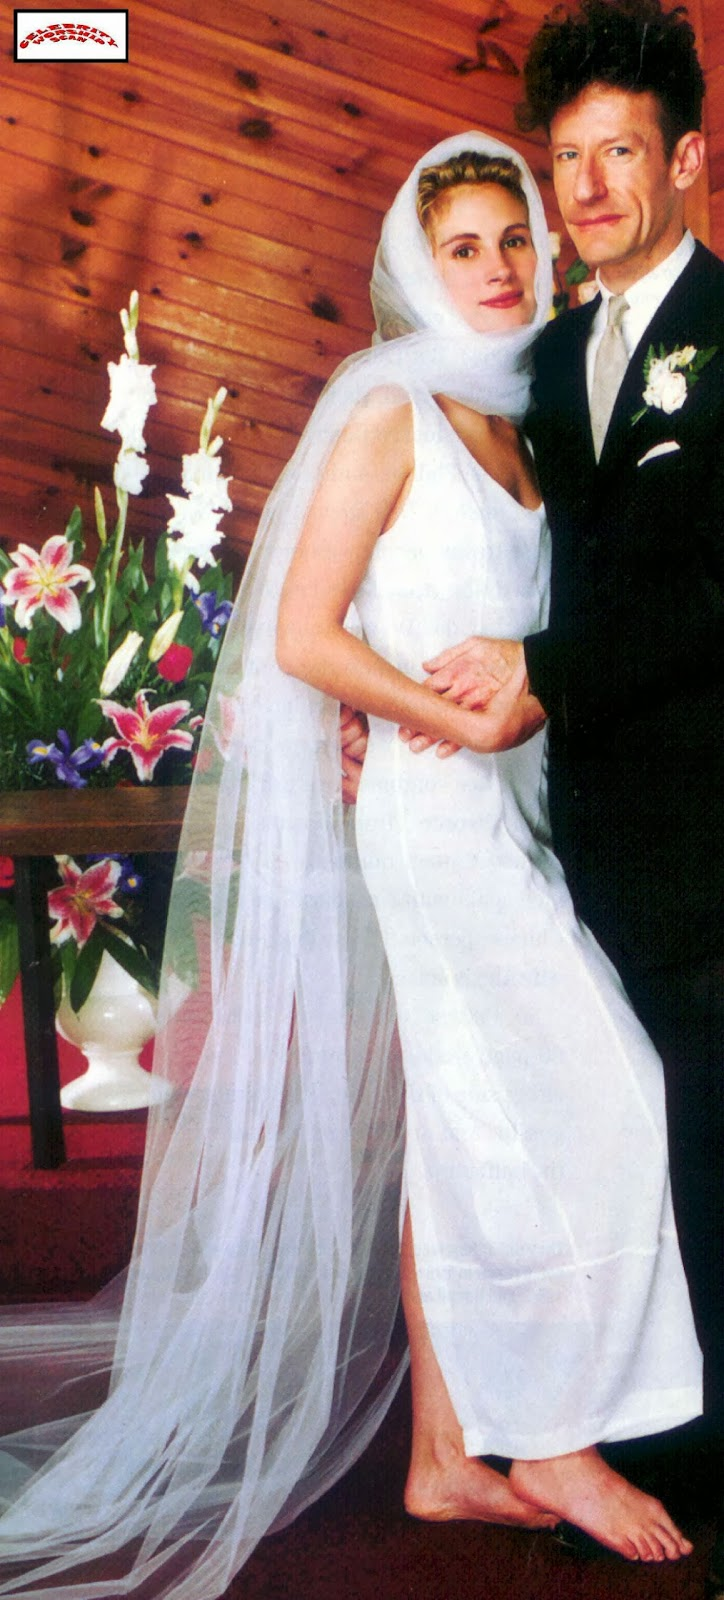 Lyle Lovett And Julia Roberts Wedding Barefoot Wore A Very Simple White Dress With Organza Shawl